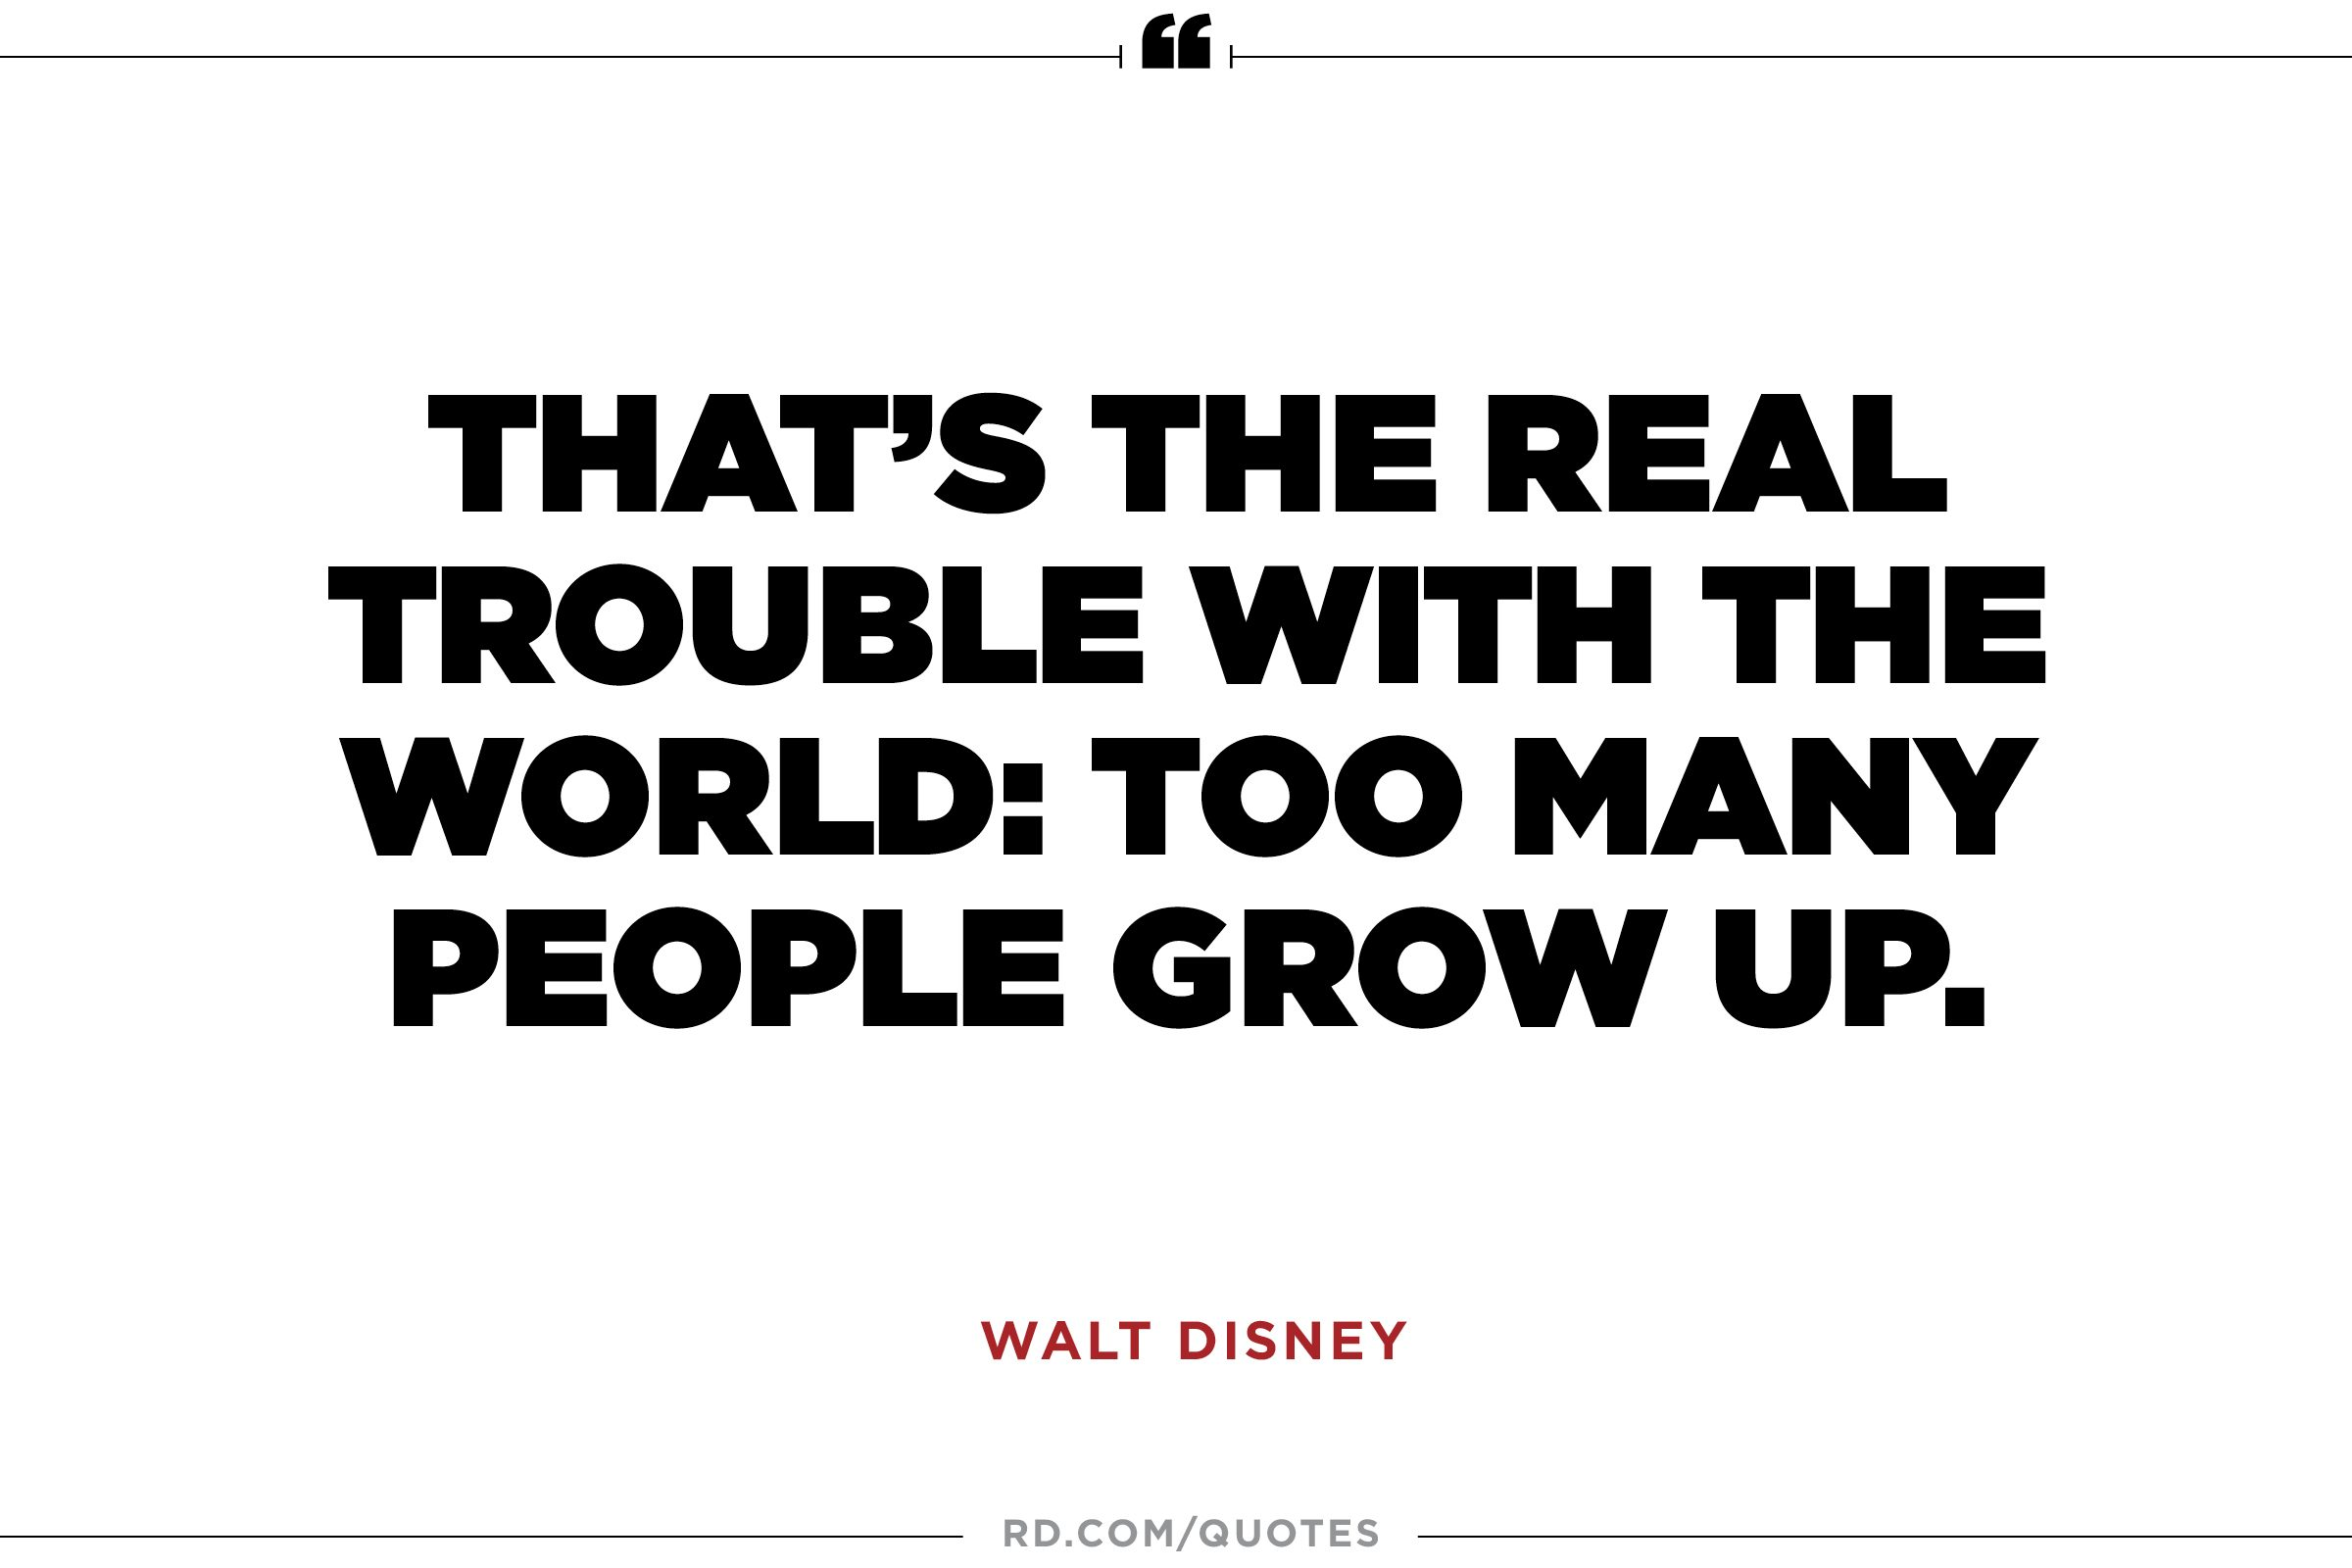 Grow Up Quotes 11 Inspiring Walt Disney Quotes  Reader's Digest